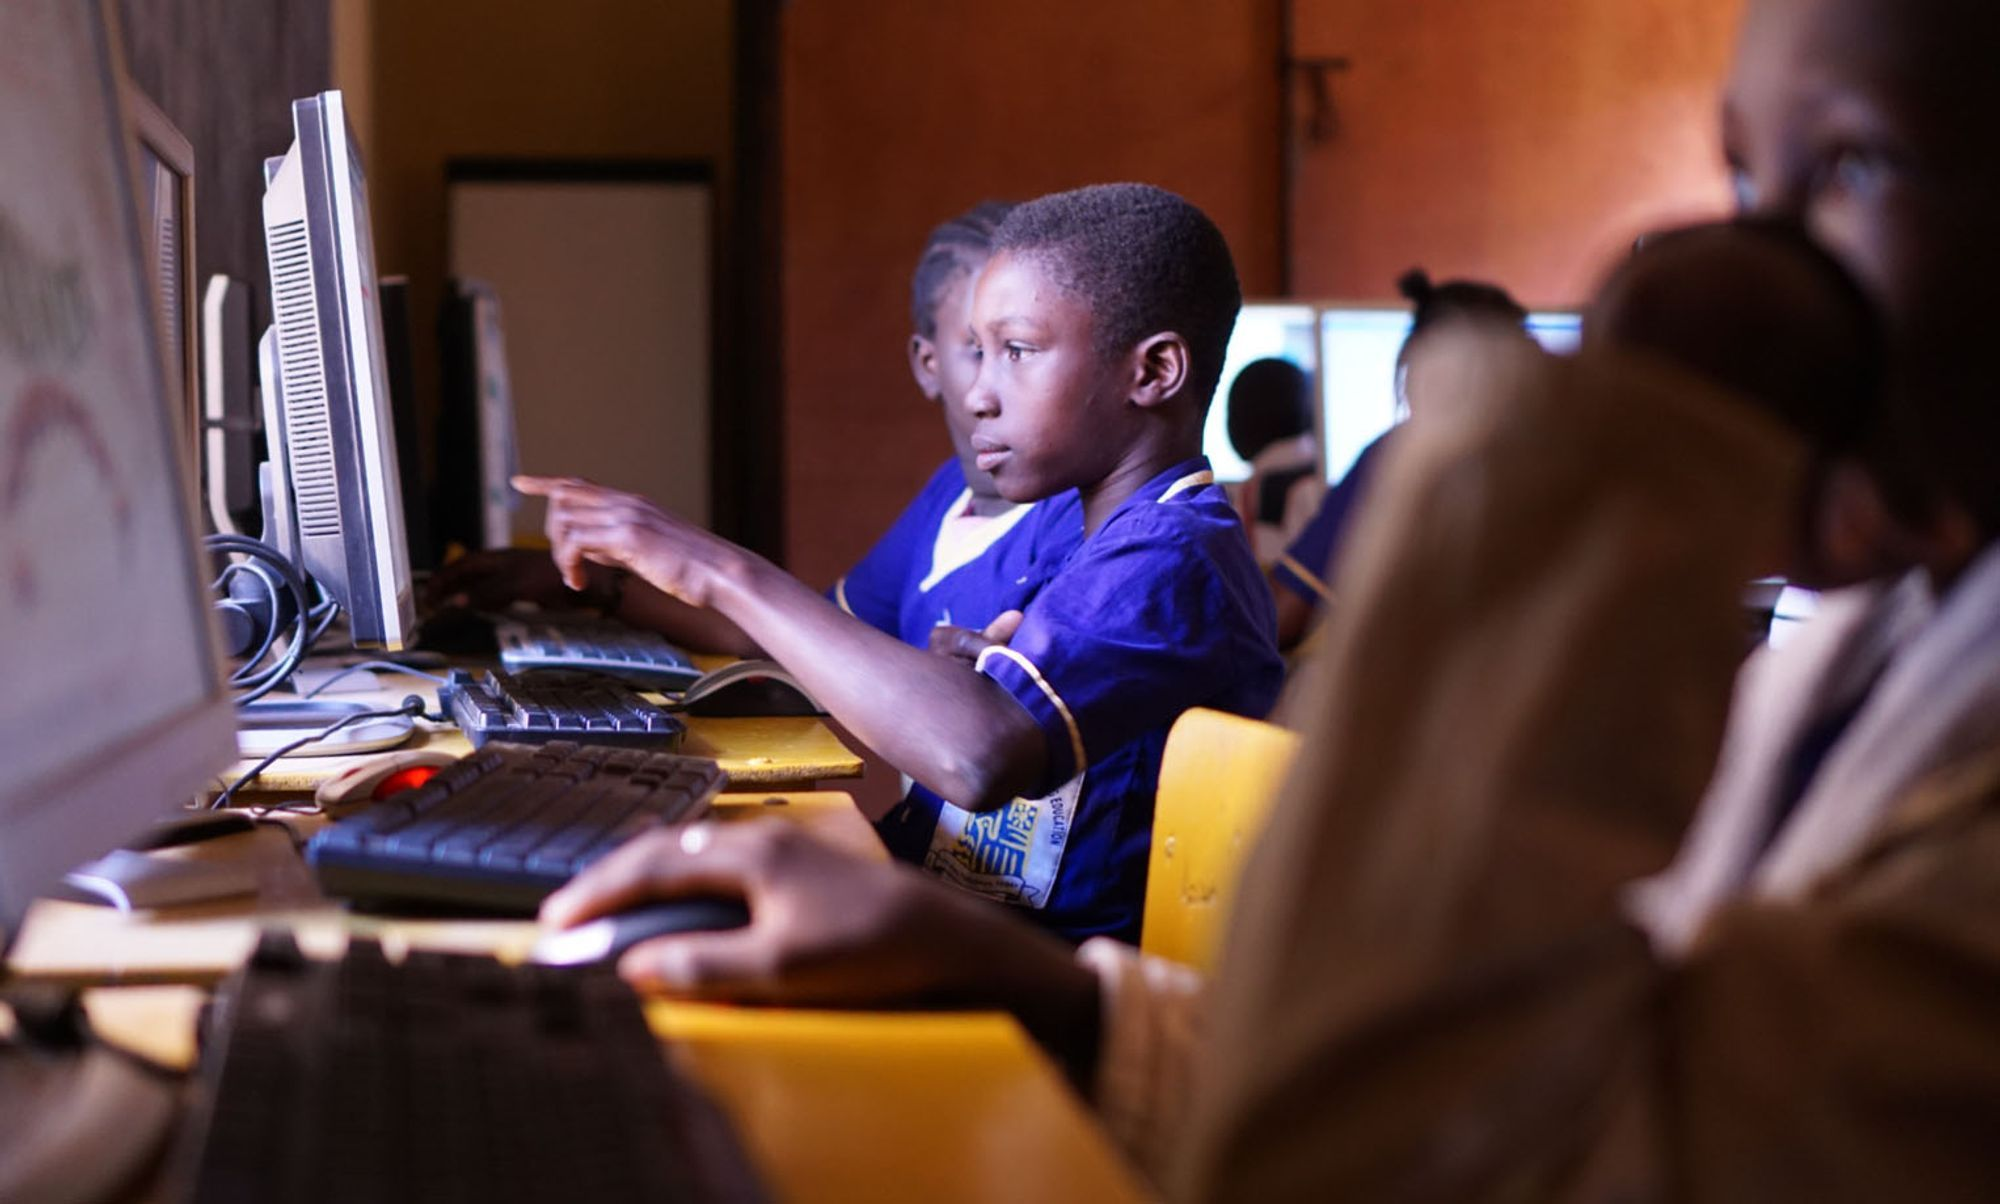 Every child deserves a ticket to digital literacy.